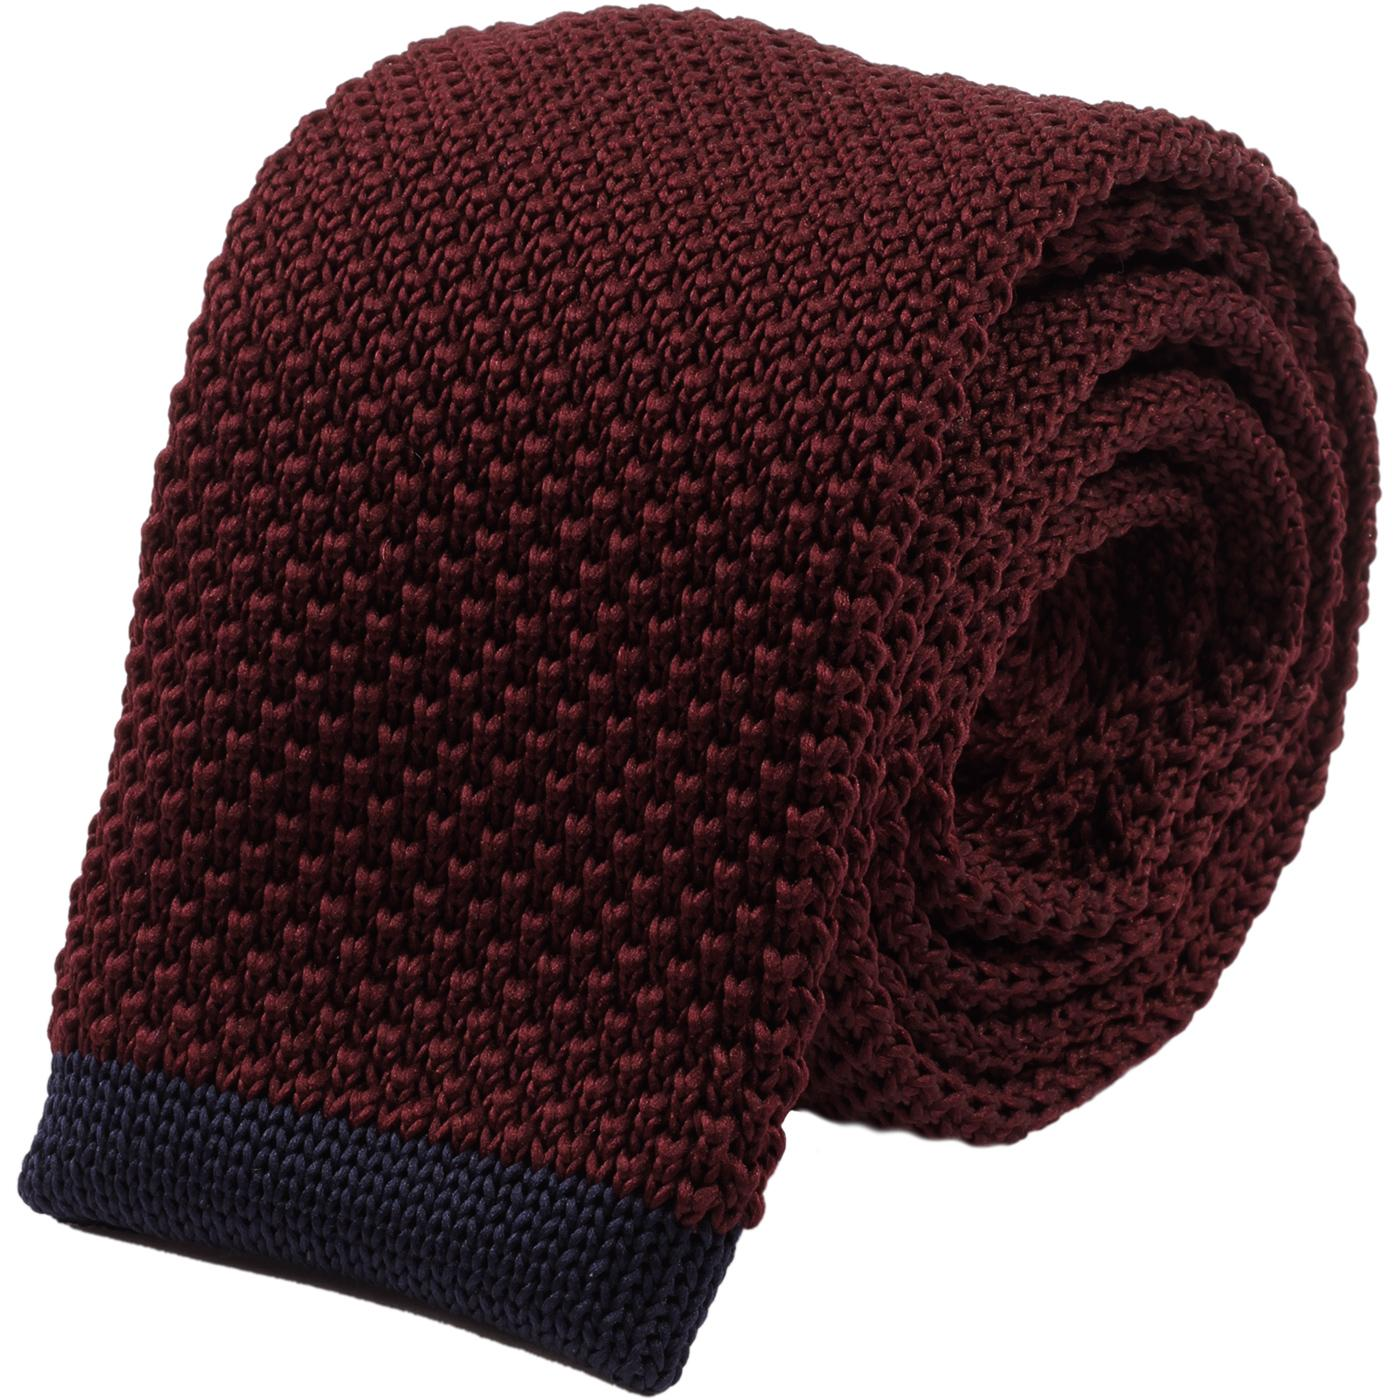 GIBSON LONDON Mod Square End Knit Tie (Burgundy)